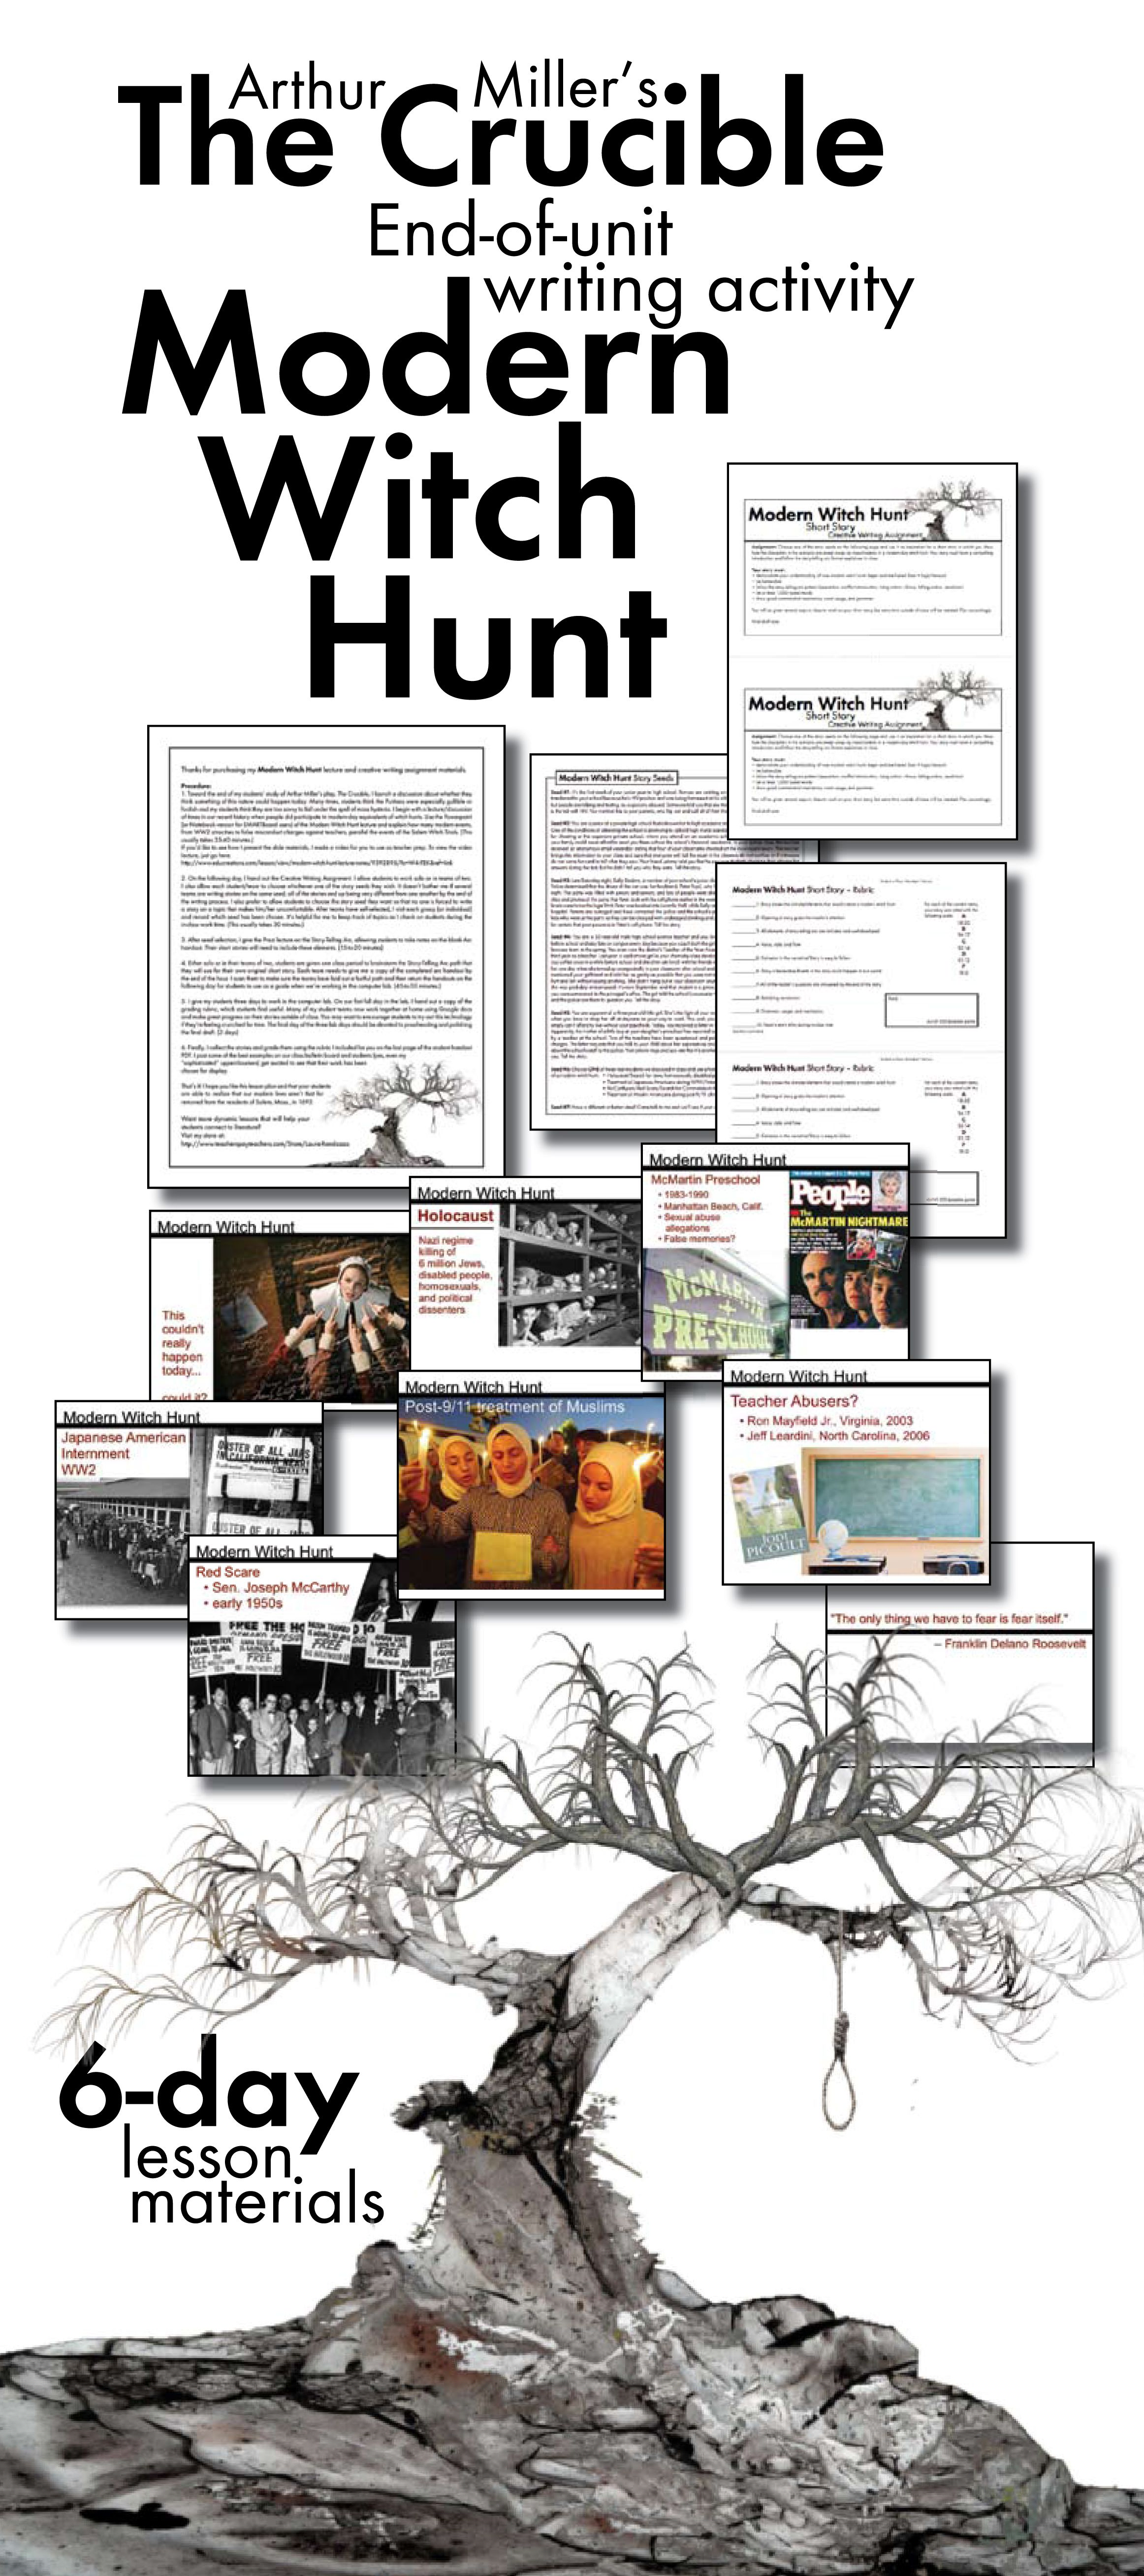 an evaluation of the mass hysteria in salem massachusetts the crucible by arthur miller A haunting examination of groupthink and mass hysteria in a rural community the place is salem, massachusetts, in 1692, an enclave of rigid piety huddled on the edge of a wilderness its inhabitants believe unquestioningly in thei.